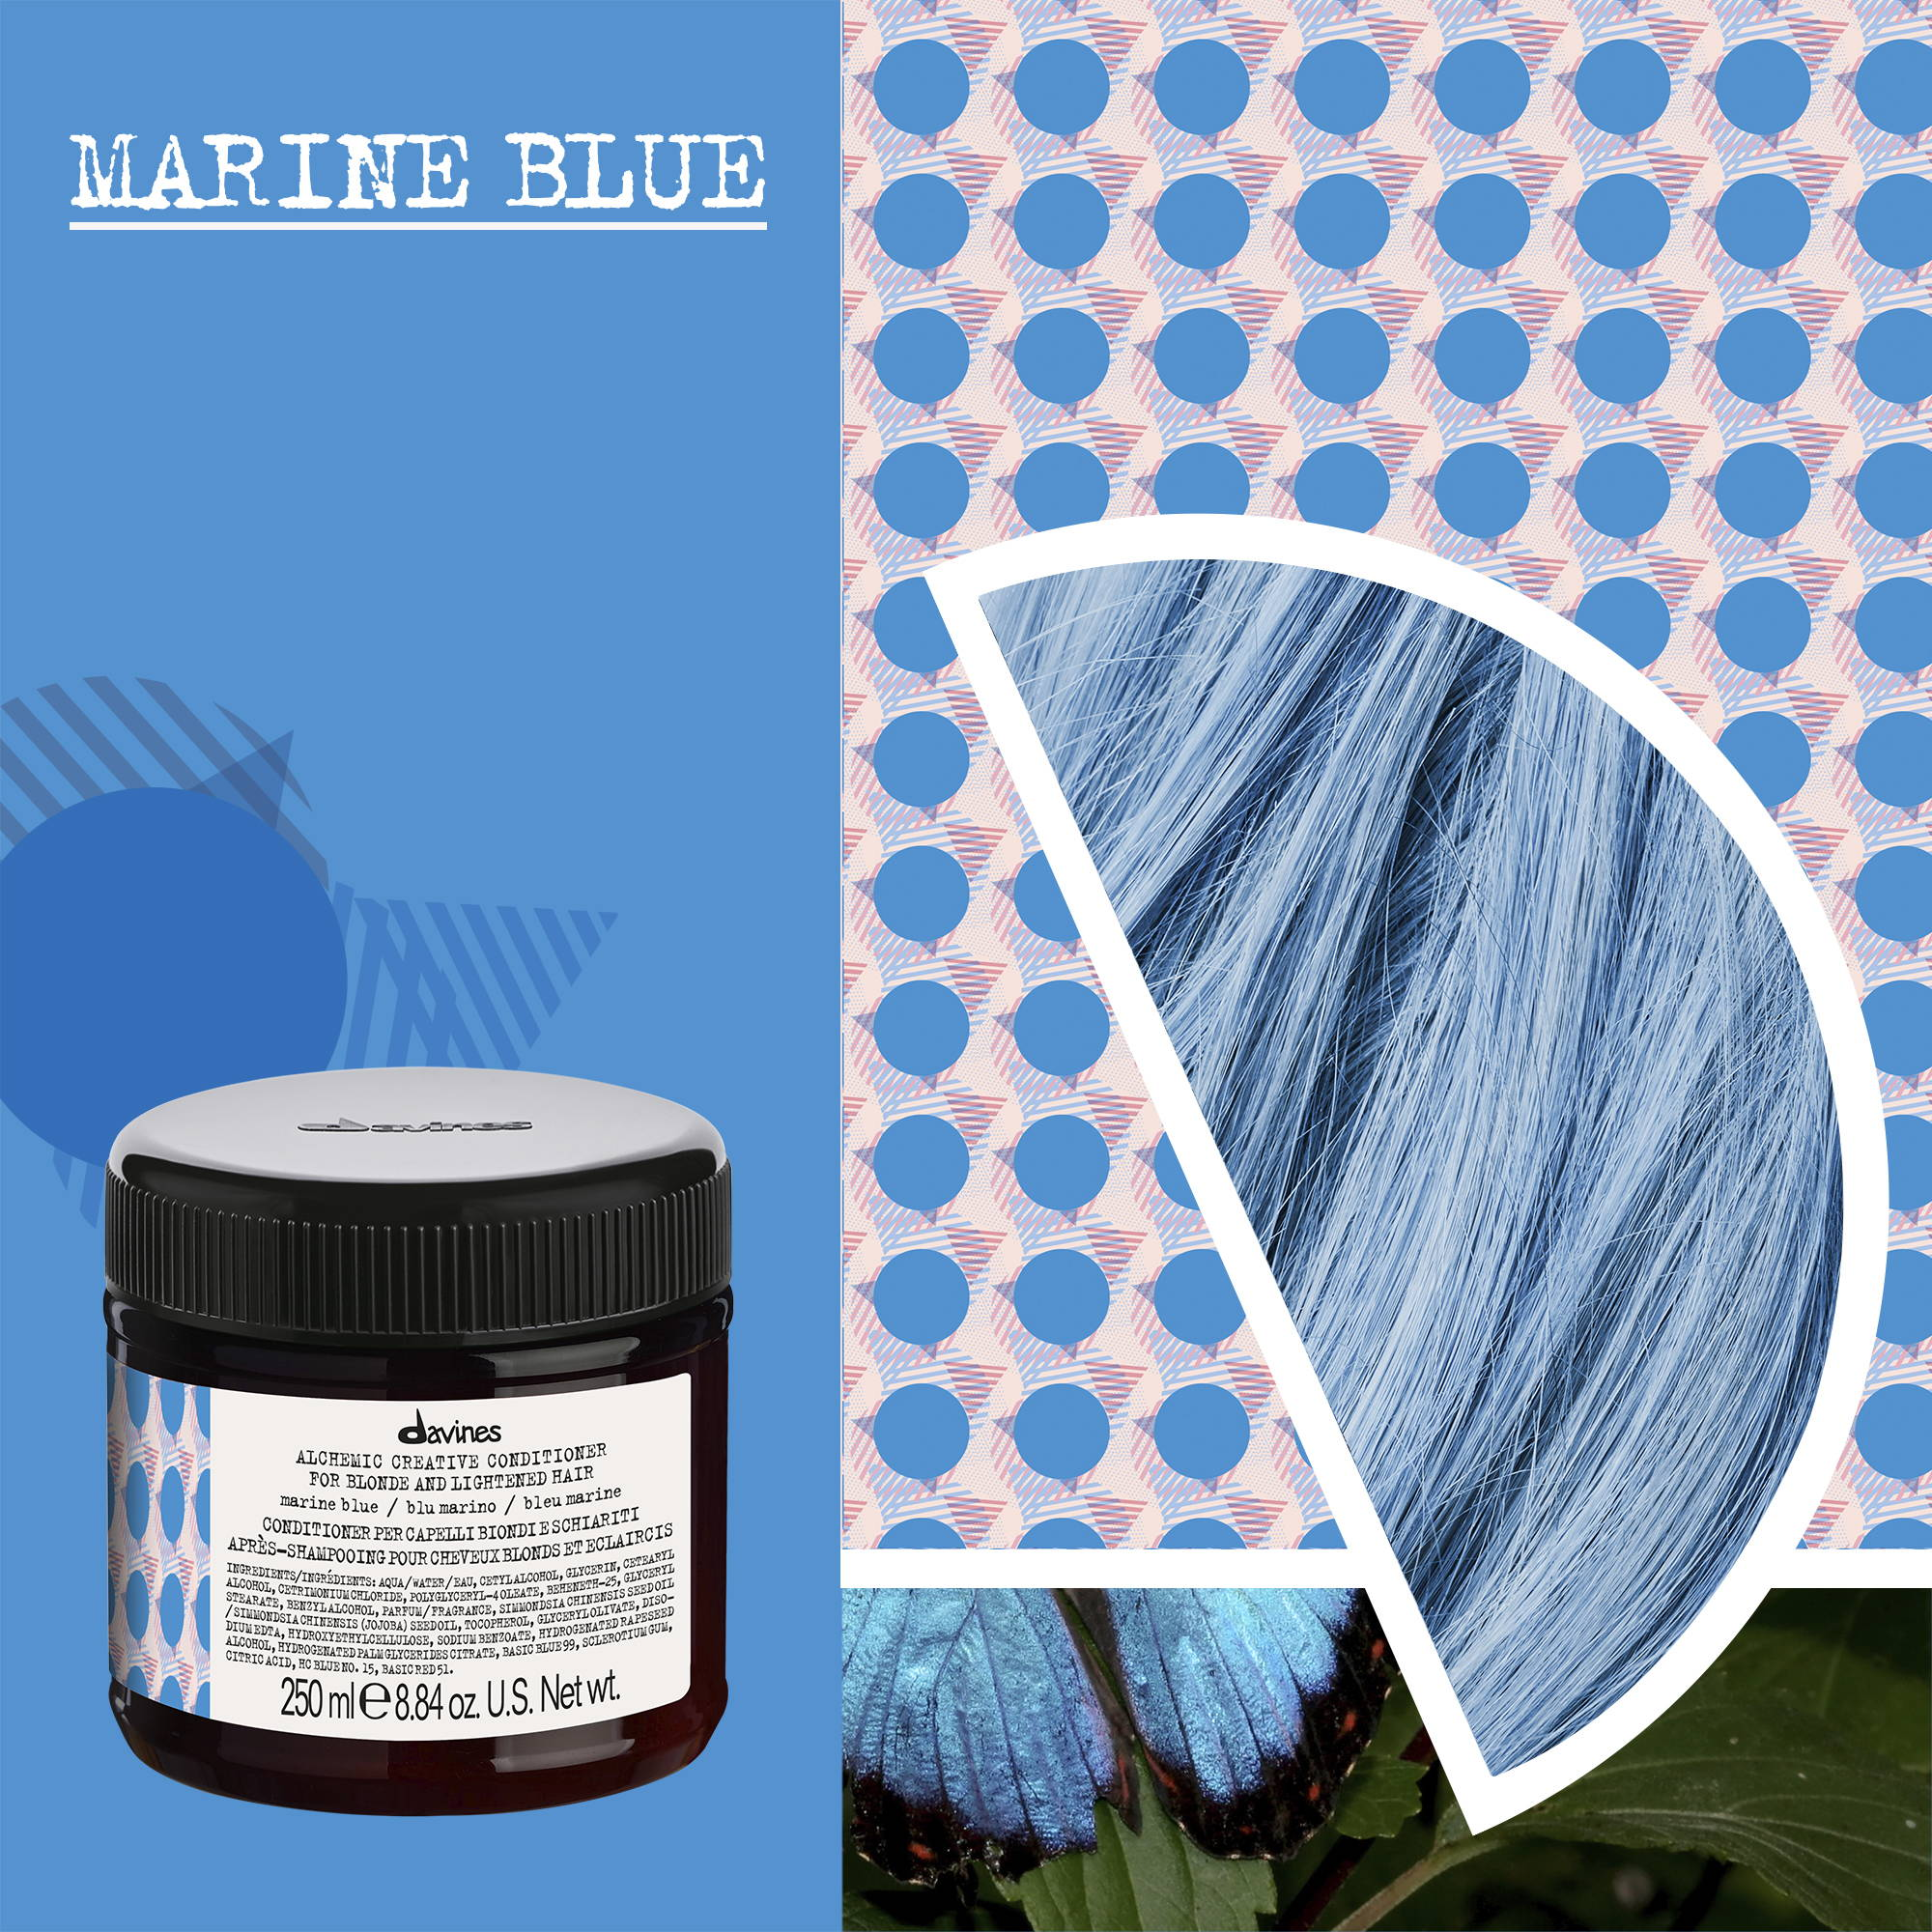 Marine Blue Alchemic Creative Conditioner